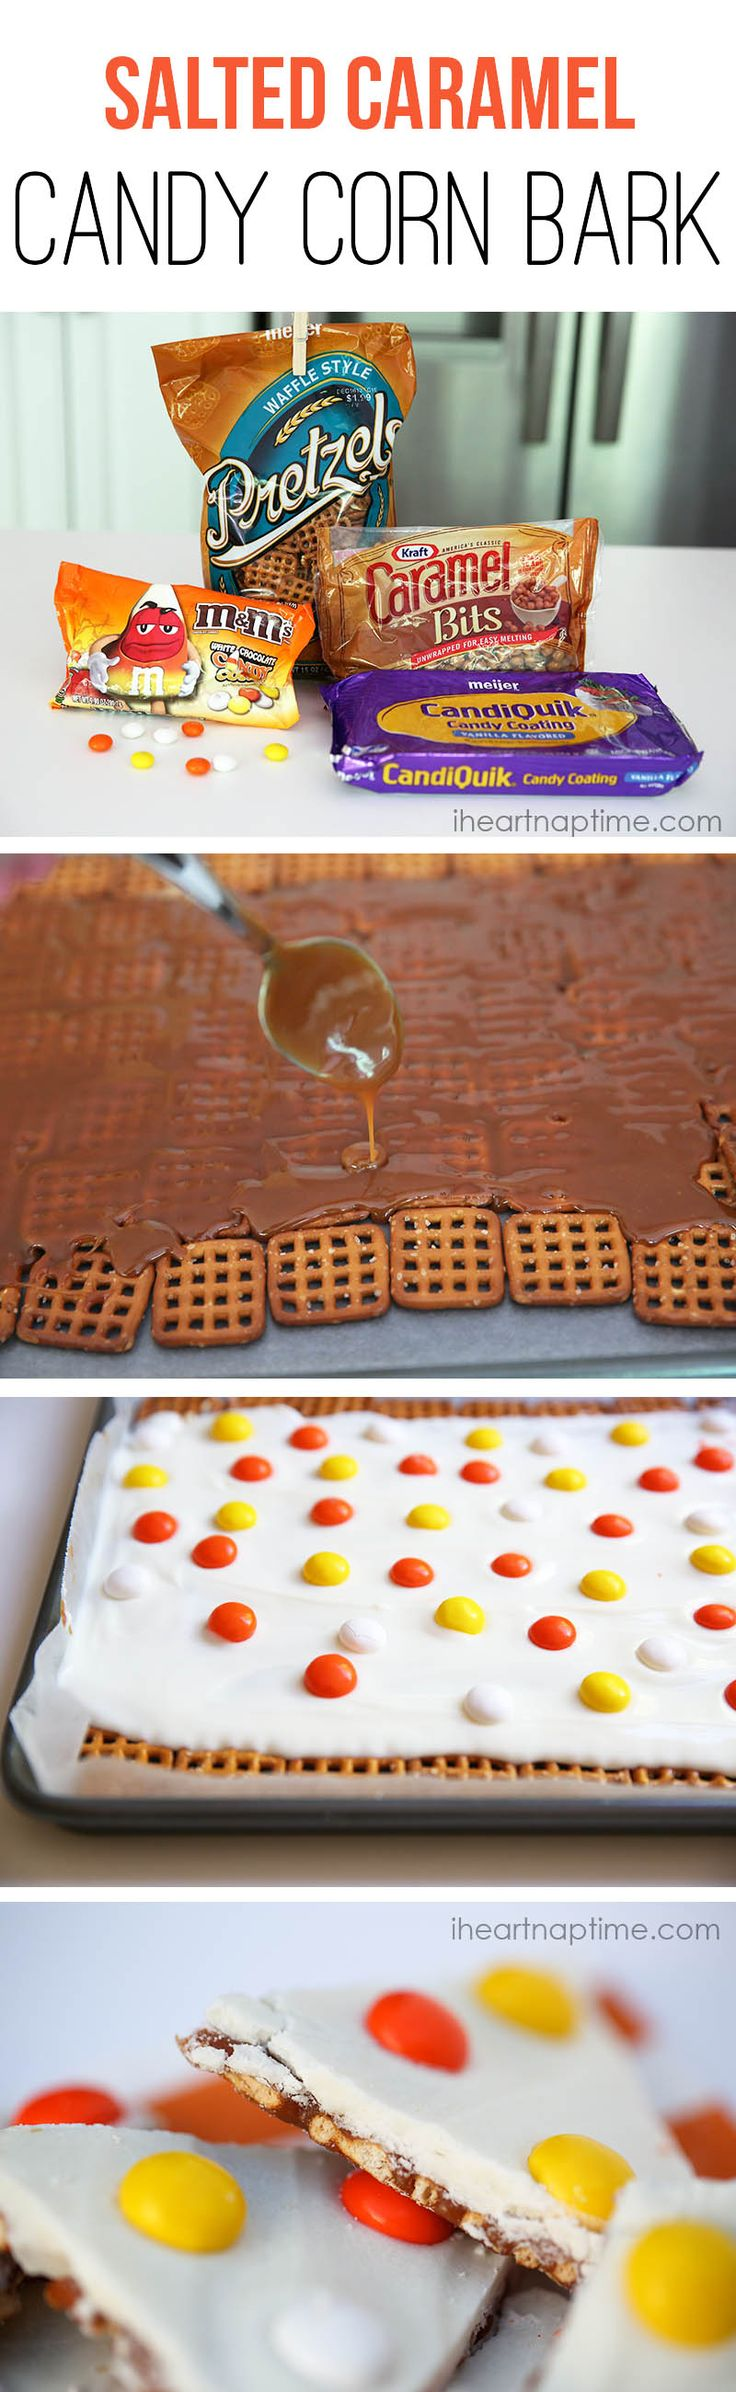 NO-BAKE salted caramel candy corn bark on iheartnaptime.com ...such an easy and delicious treat! Halloween recipe